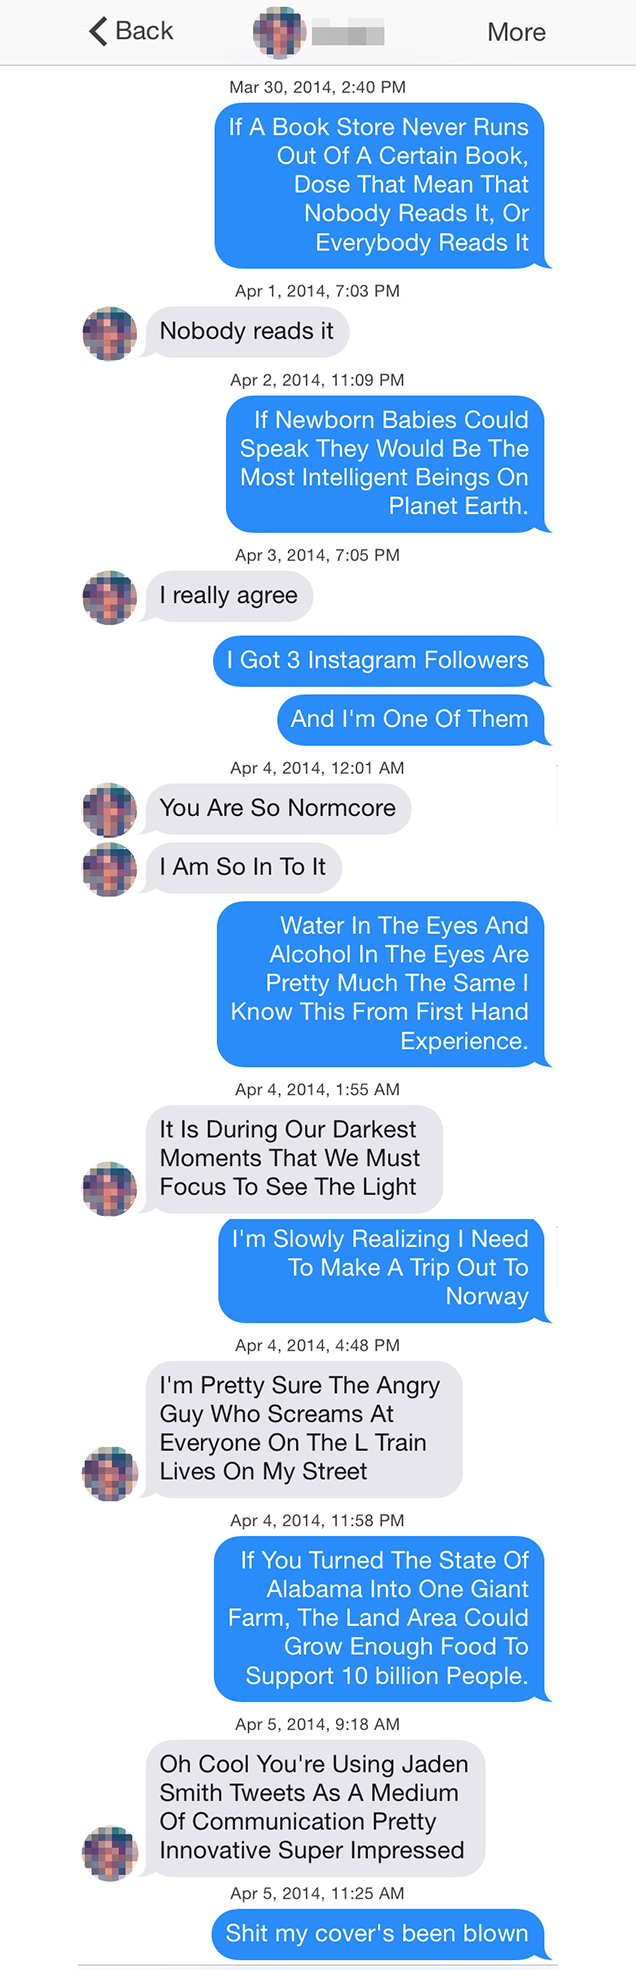 Jaden Smith Tweets on Tinder